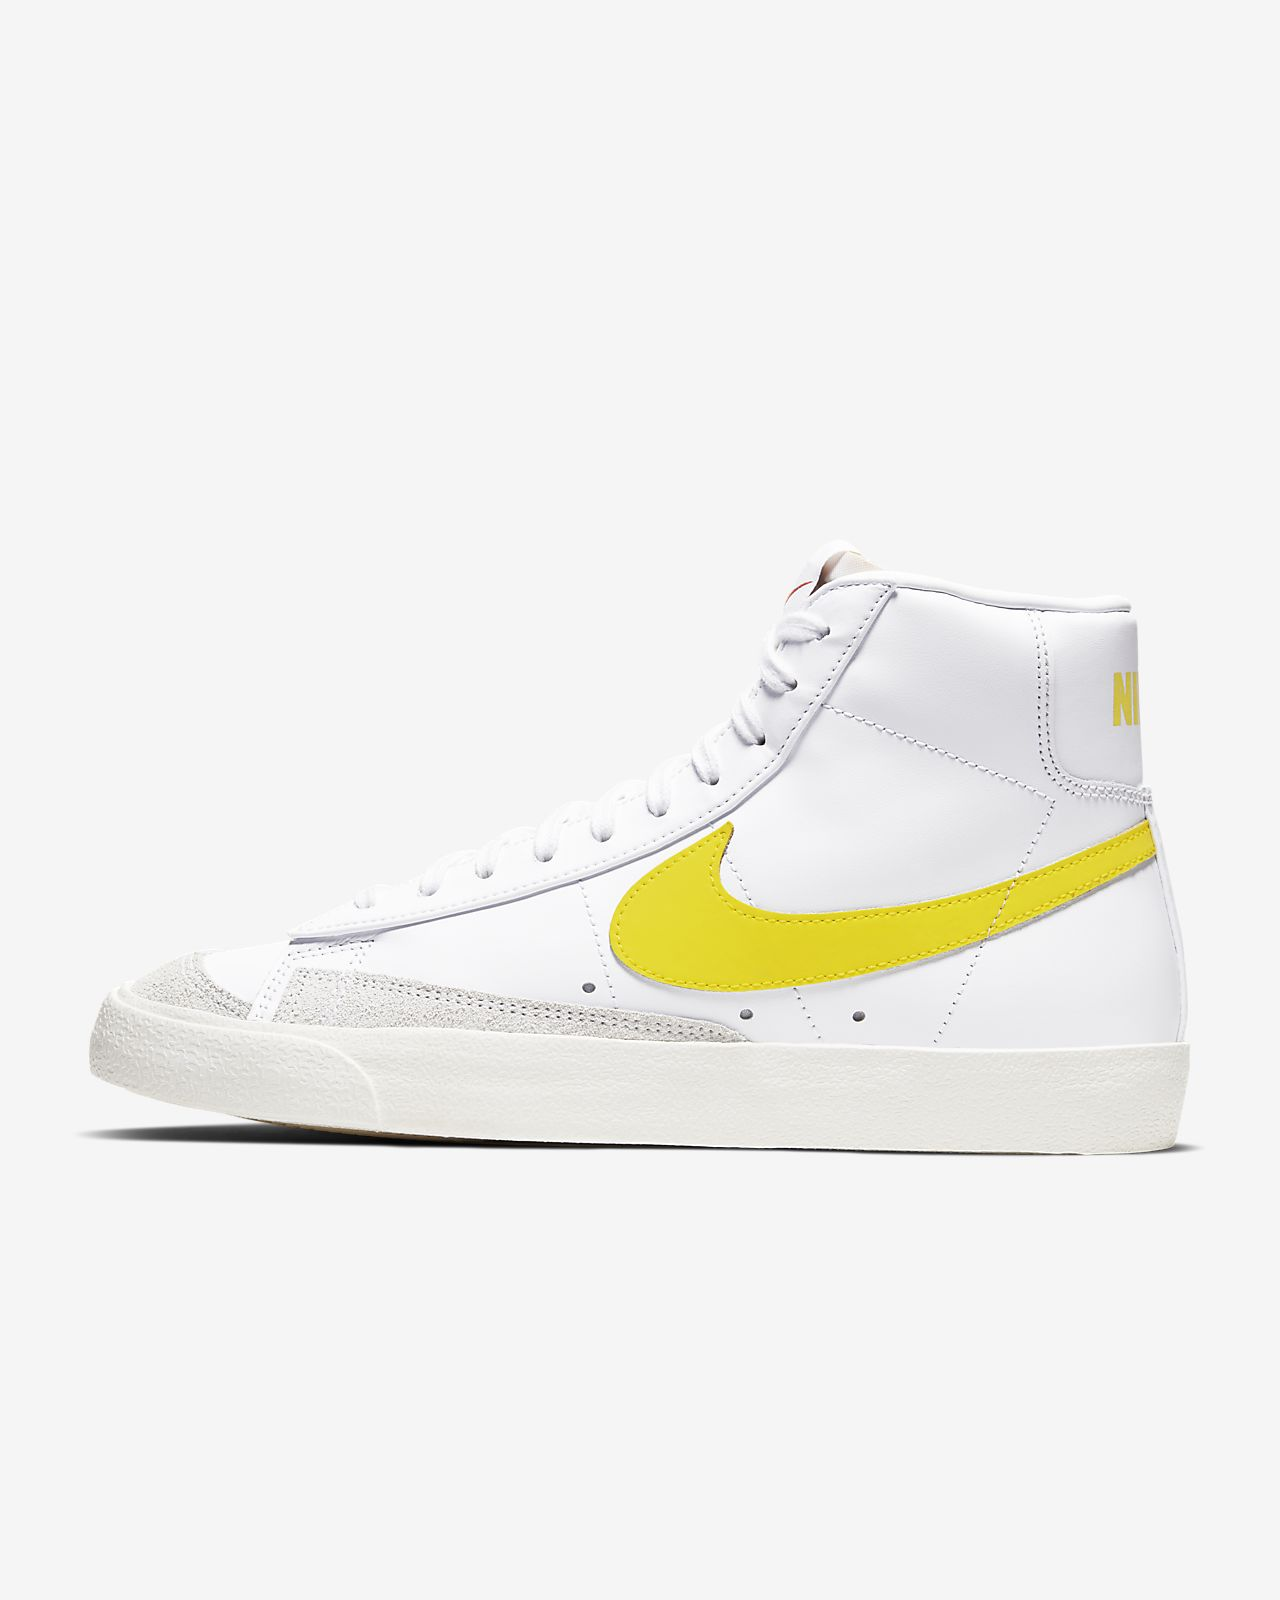 the latest 146e9 febfb Nike Blazer Mid '77 Vintage Men's Shoe